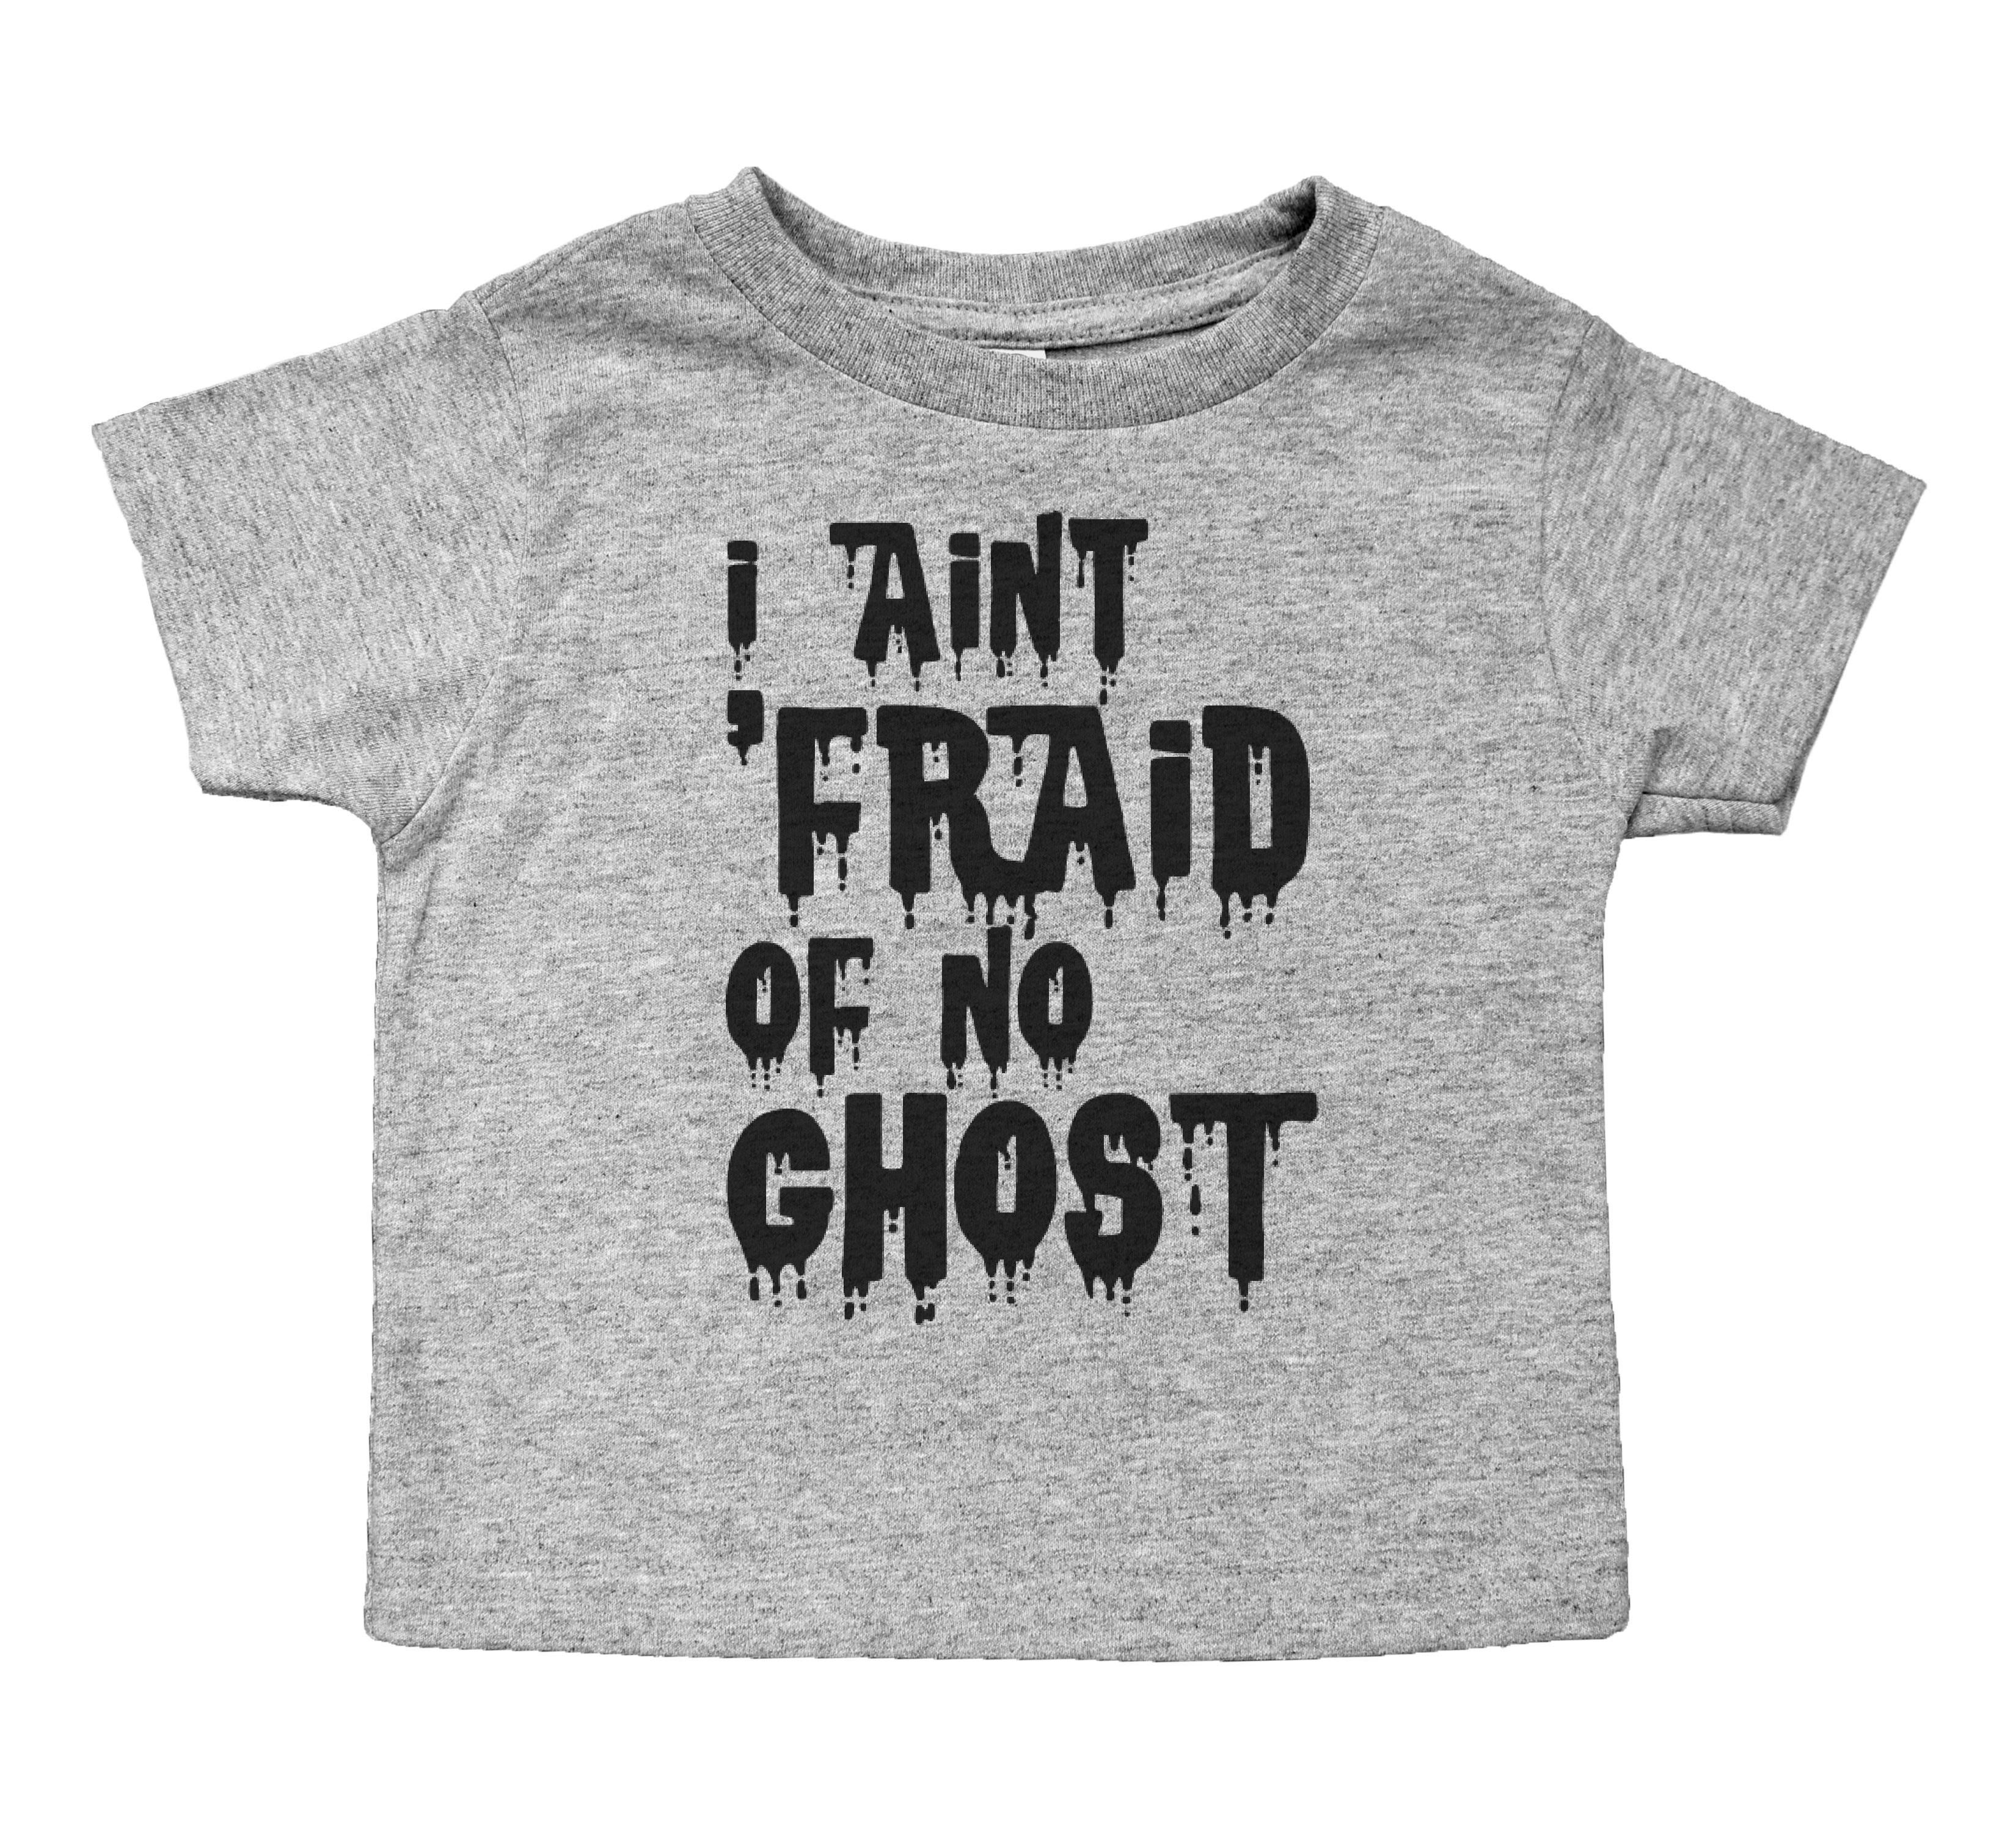 e20514002 Funny Ghostbusters Inspired Toddler T-Shirt for Boys or Girls / Grey or  White